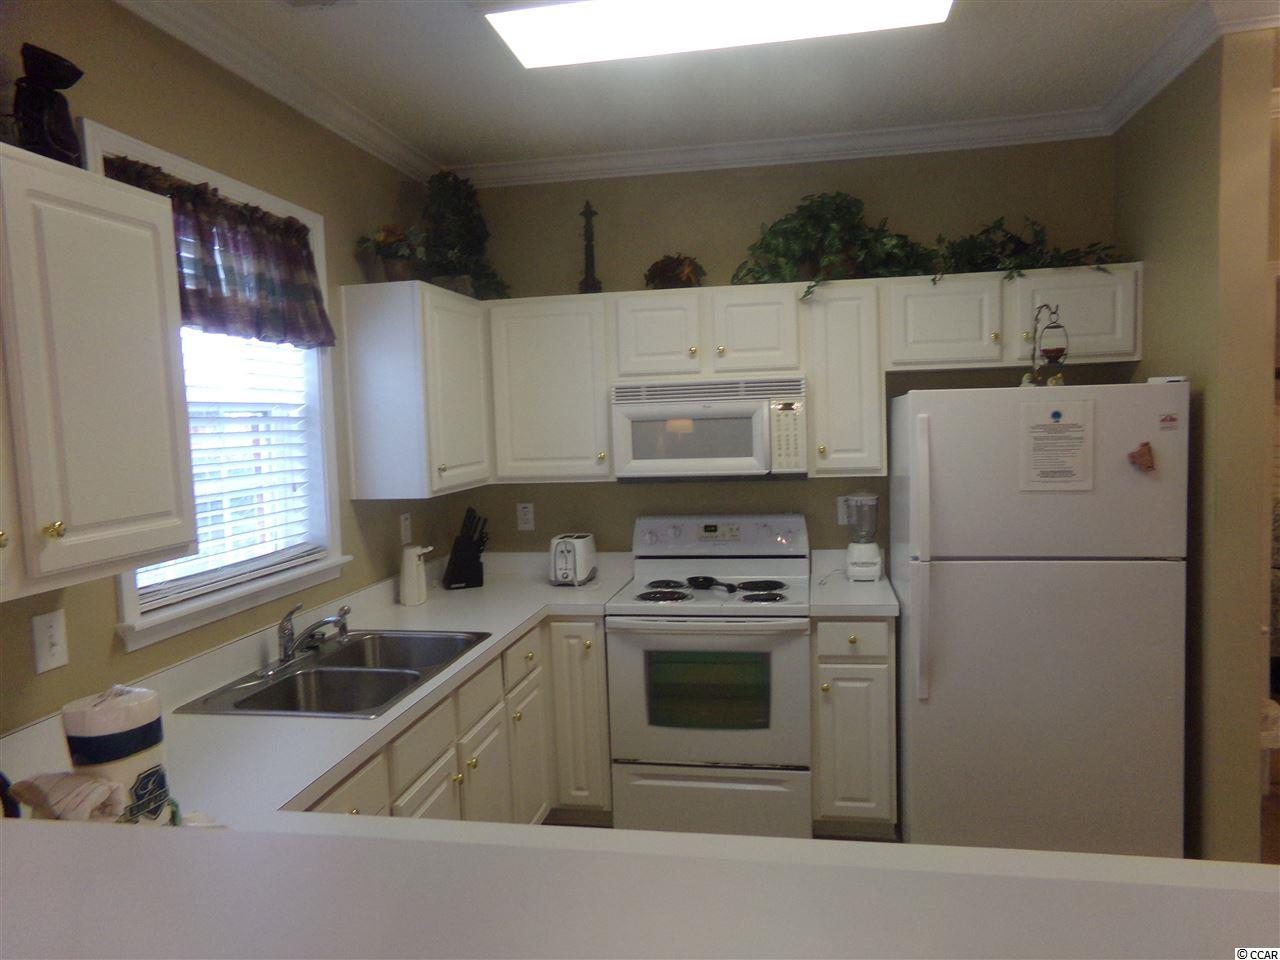 The Havens @ Barefoot Resort condo for sale in North Myrtle Beach, SC